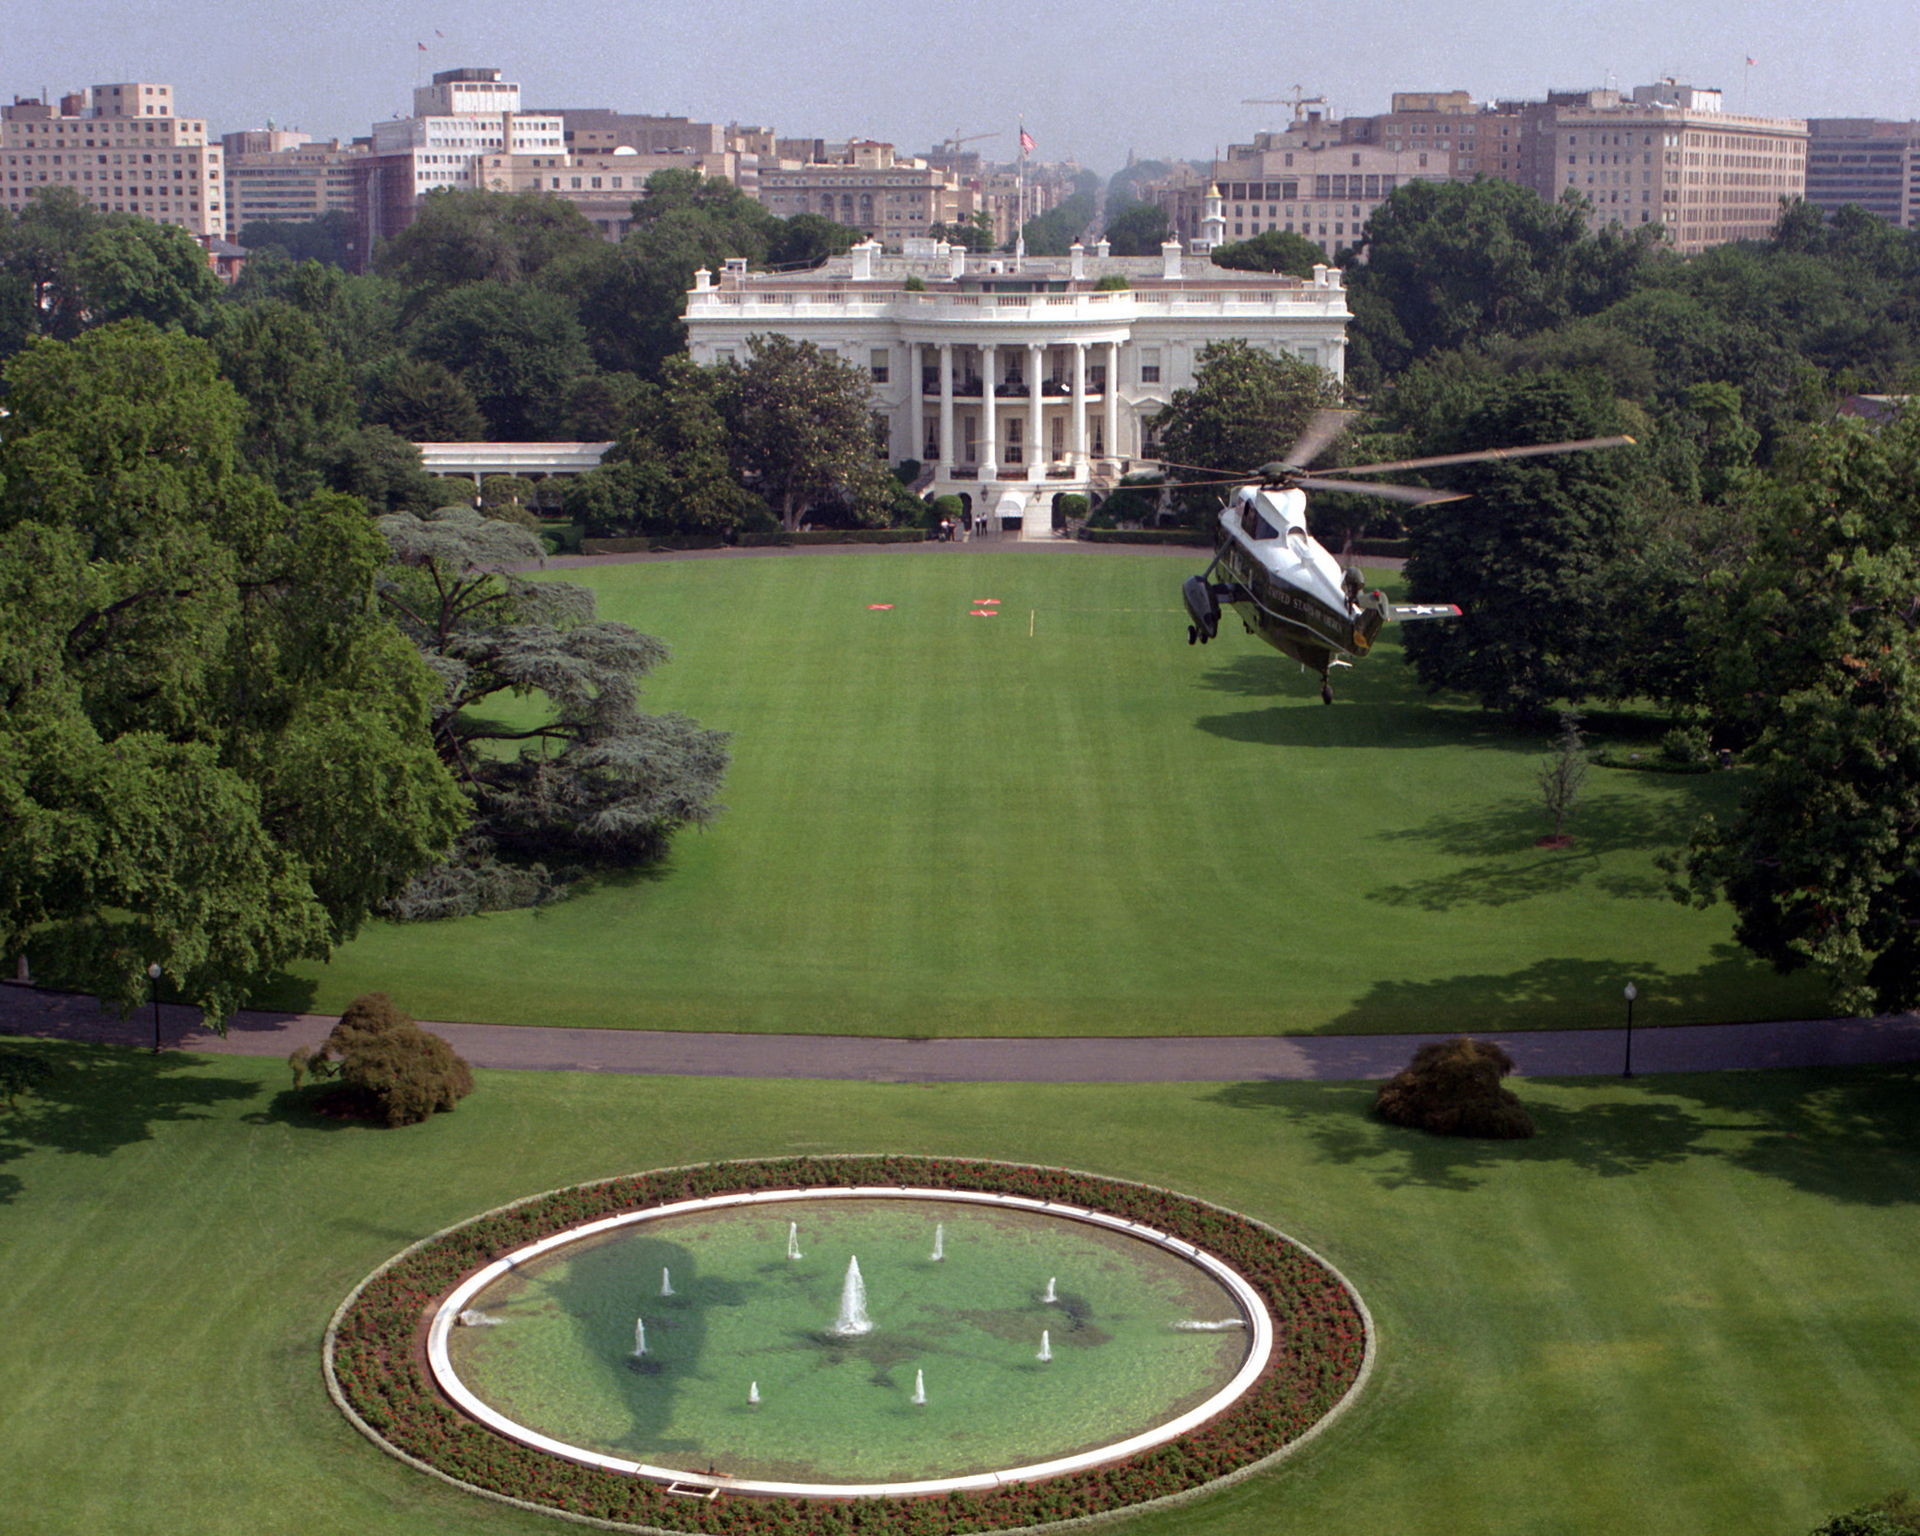 The White House and Marine One